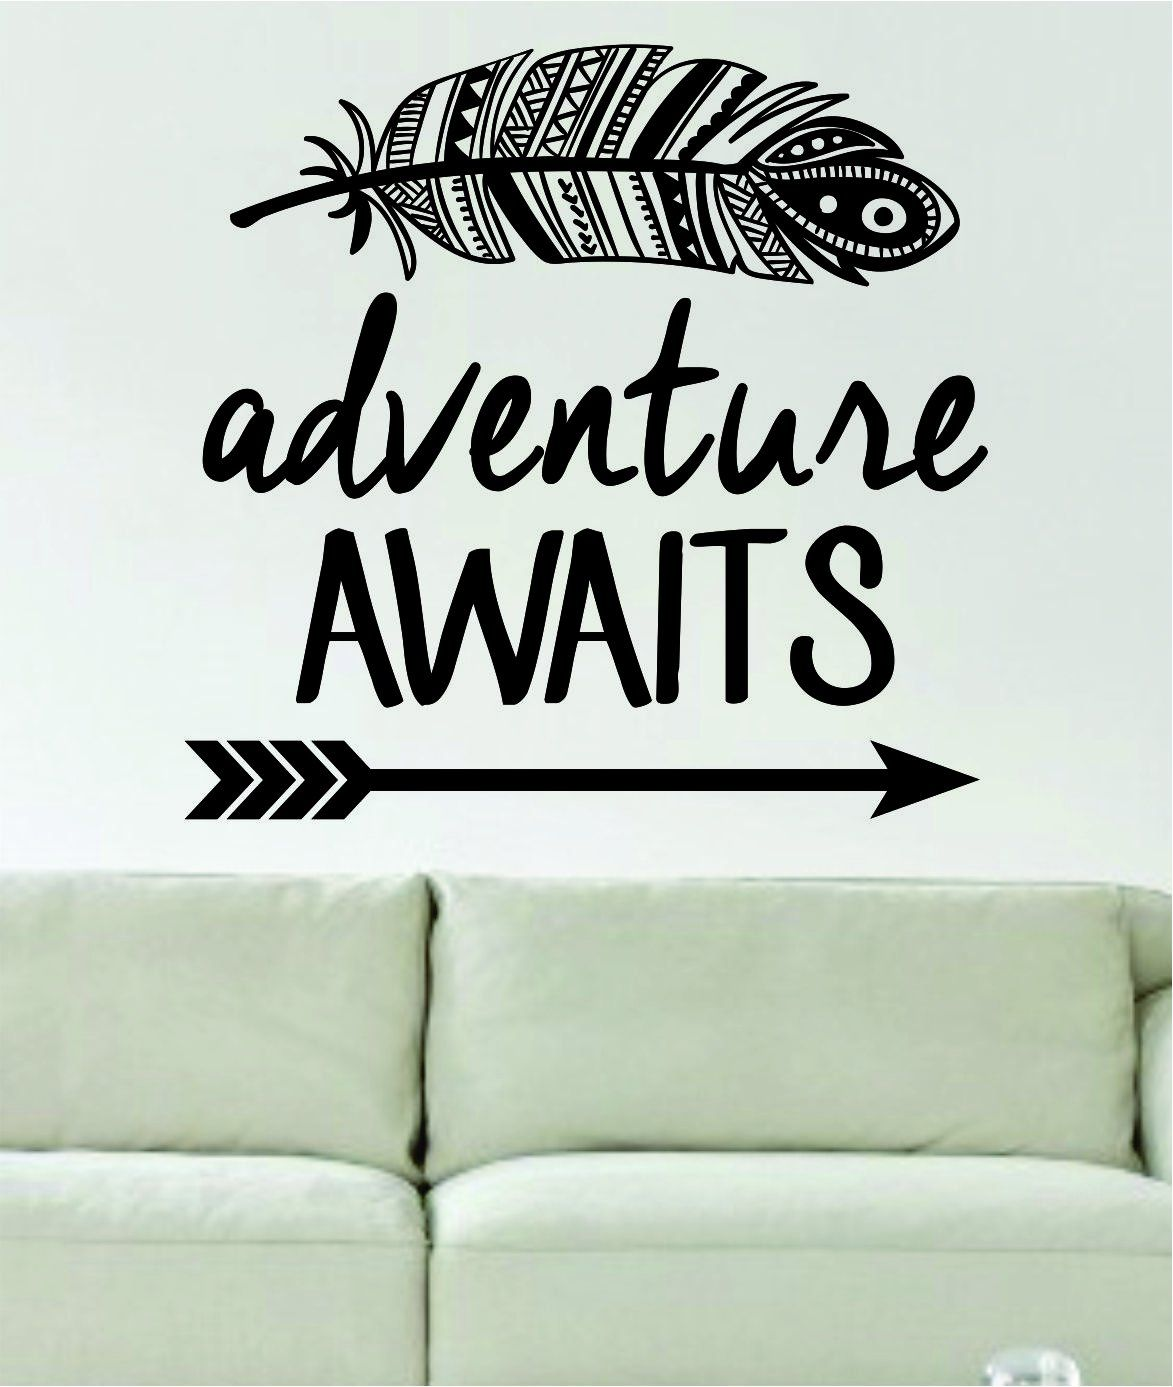 feather arrow pattern with various mid century style arrows wall adventure awaits feather and arrow design decal sticker wall vinyl art words decor